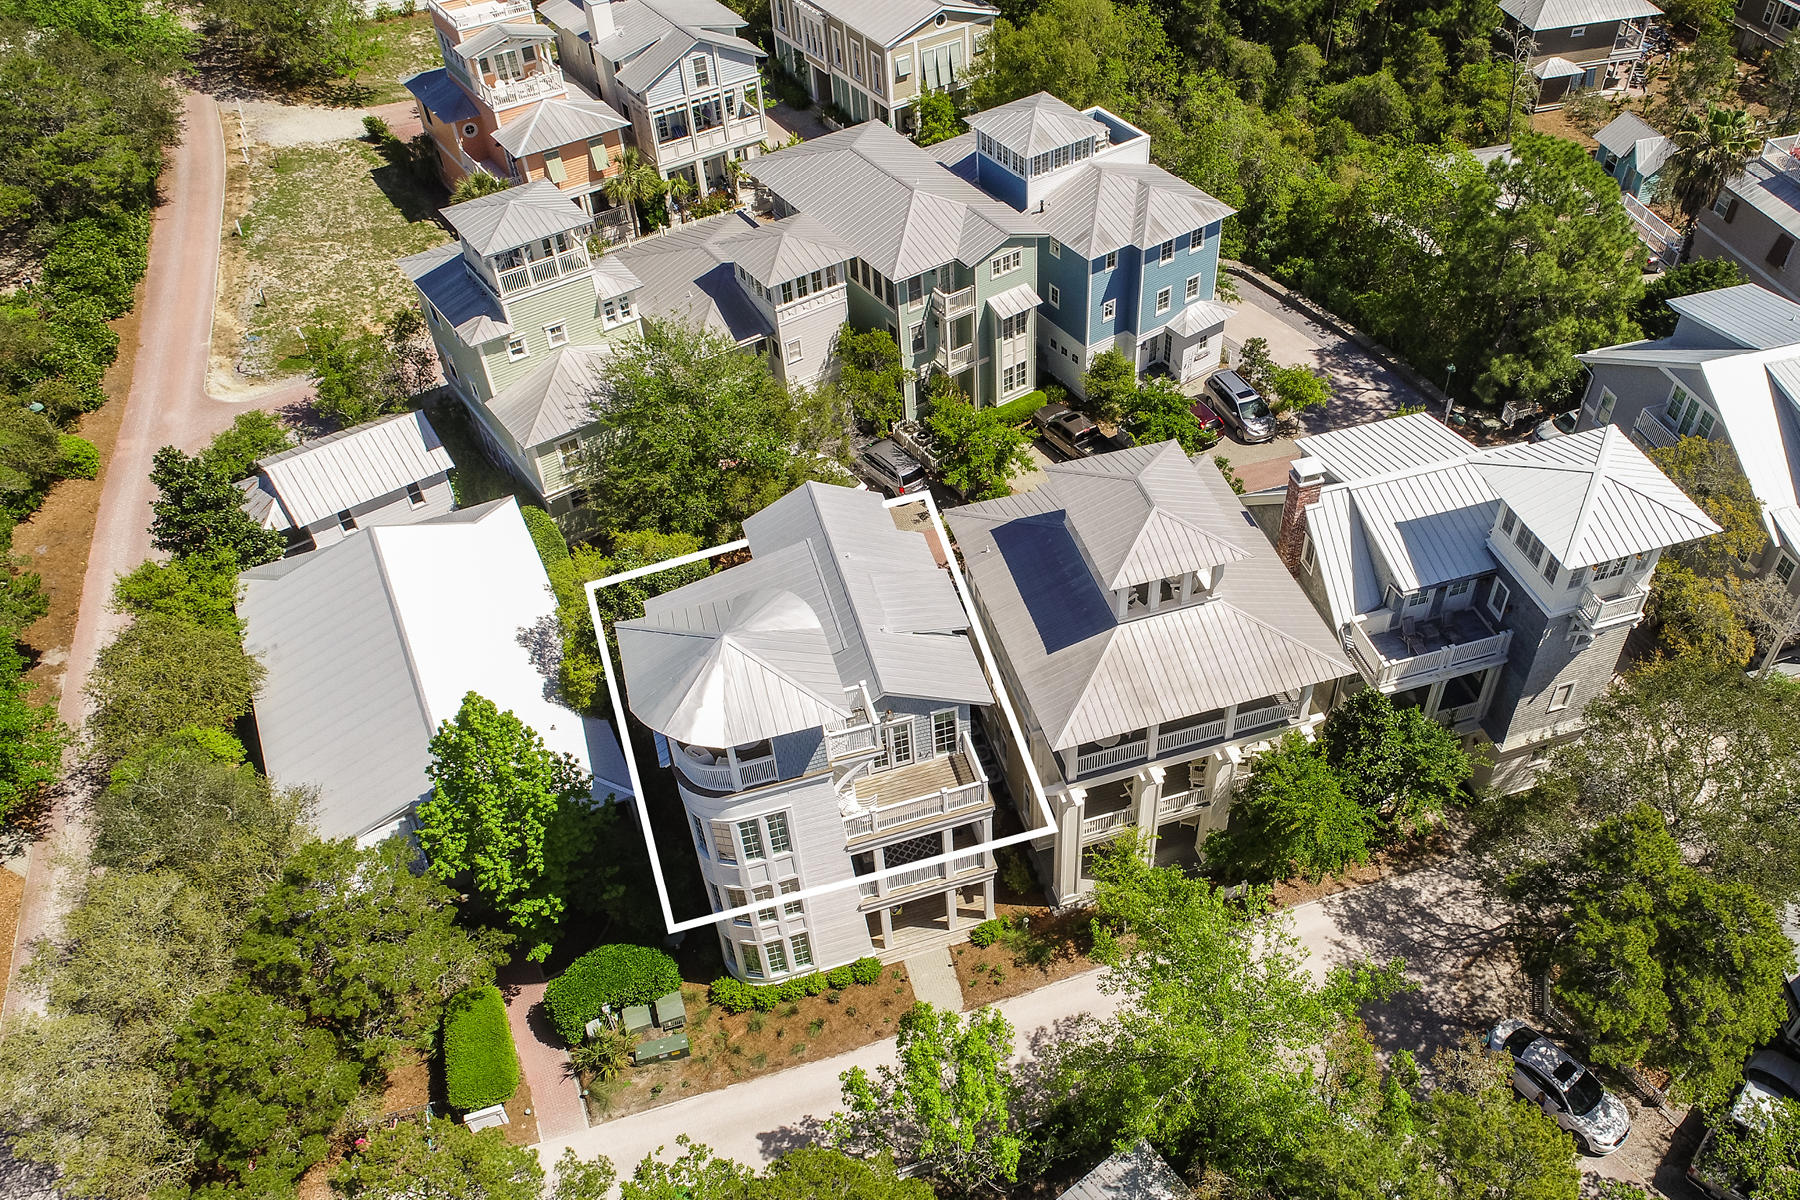 392 Forest,Santa Rosa Beach,Florida 32459,4 Bedrooms Bedrooms,4 BathroomsBathrooms,Detached single family,Forest,20131126143817002353000000